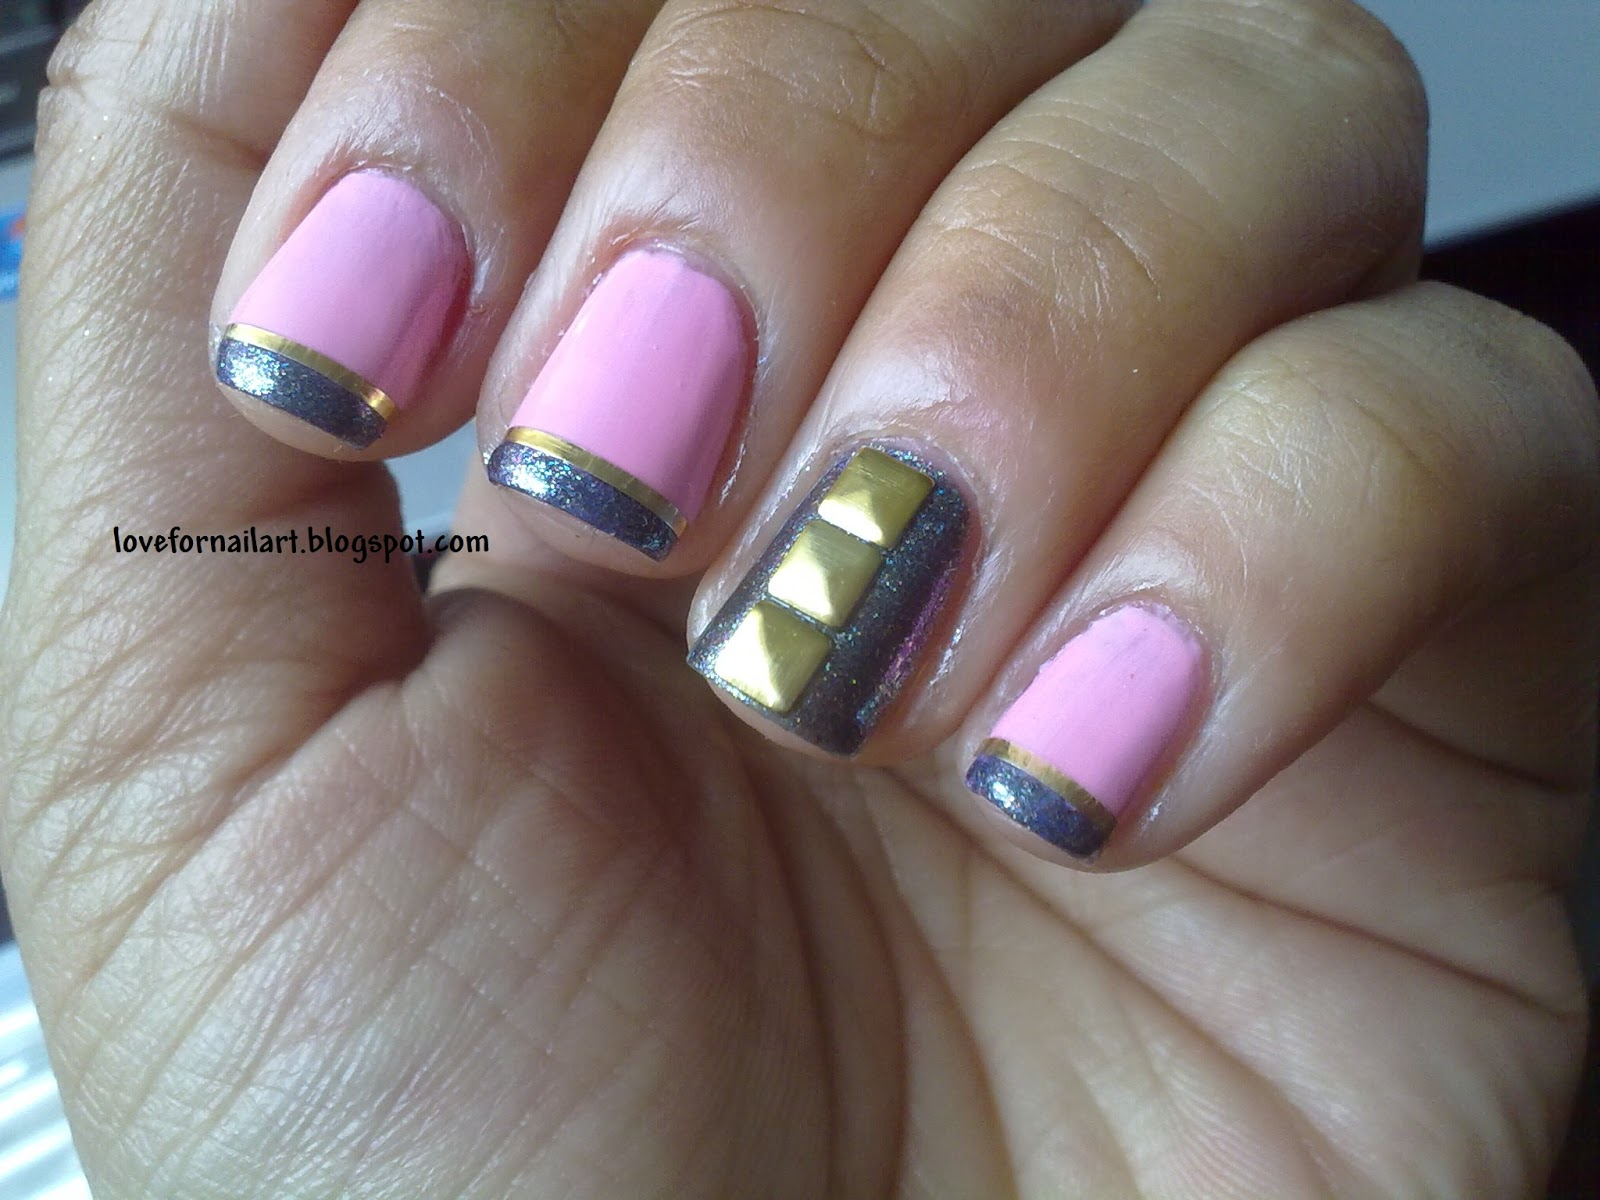 Love For Nail Art: Studded Nails